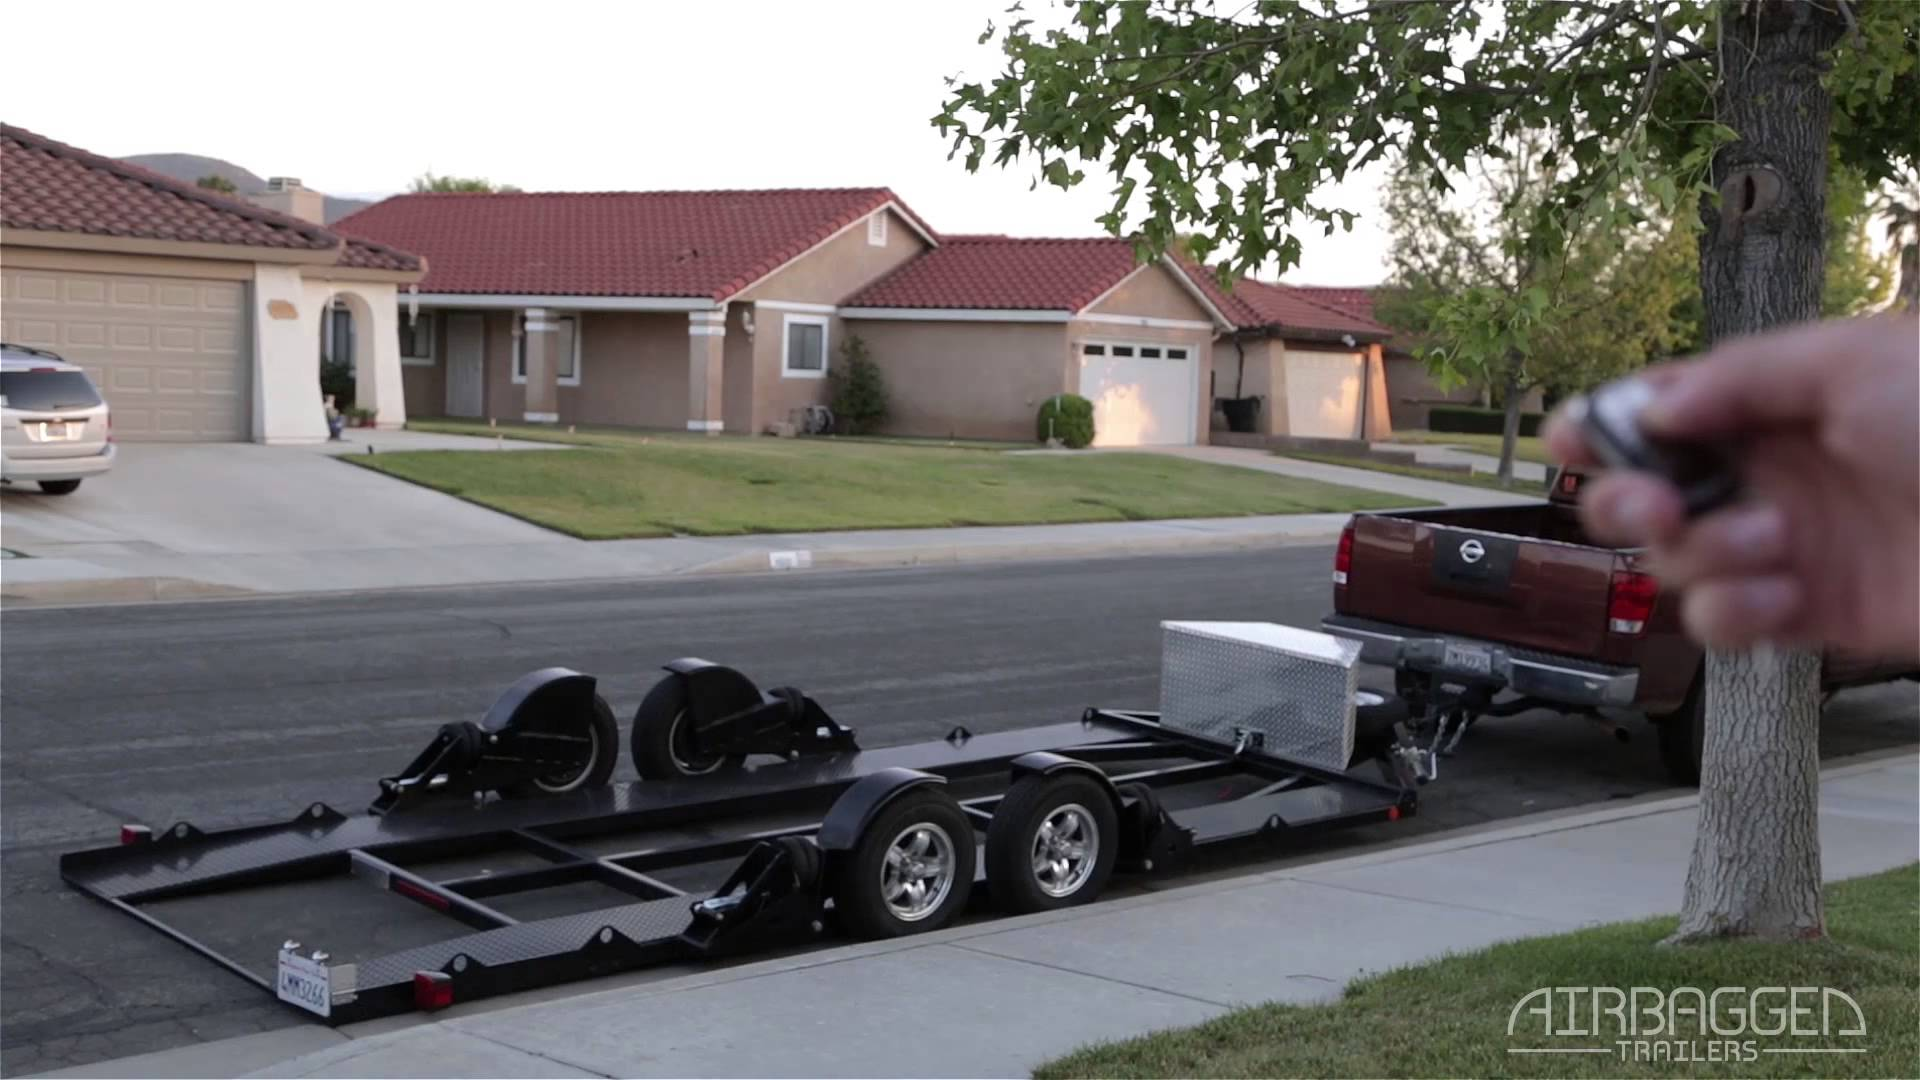 Remote Control Airbag Lift Makes Loading Your Trailer A